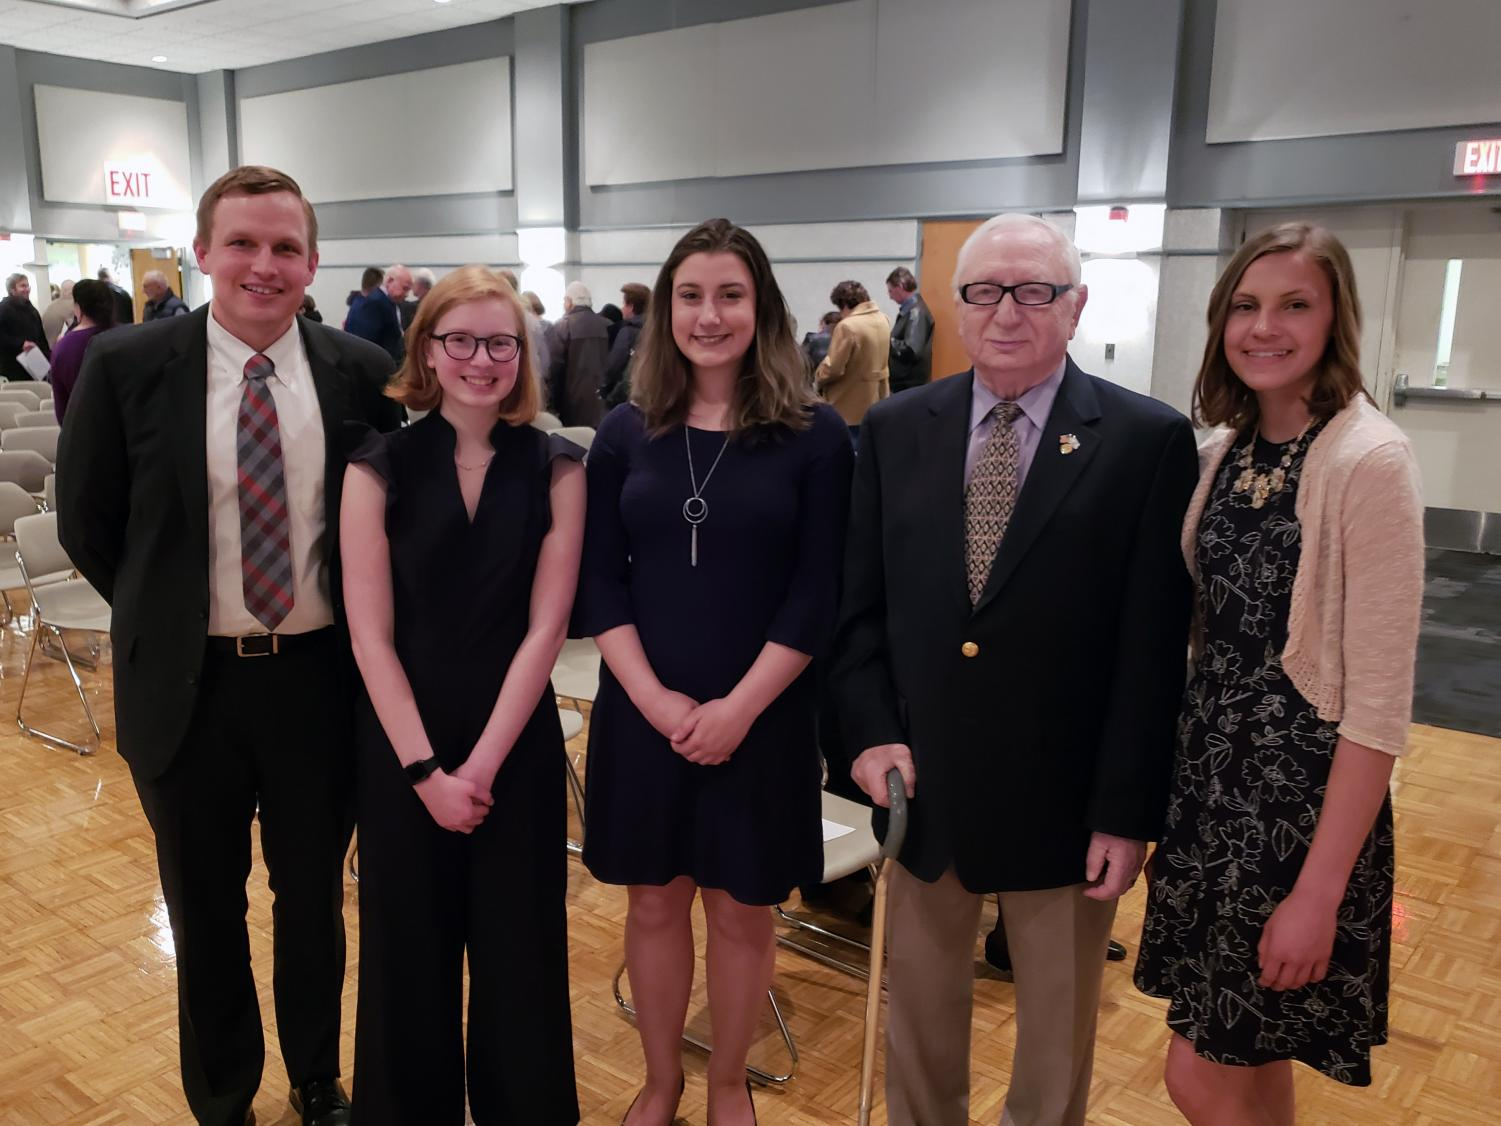 From left, Susquehannock English teacher Tim Groth, Alexandra Marusko, Andrea Hebel, Holocaust Surivivor Howard Kaidanow, and Courtney Burgess.